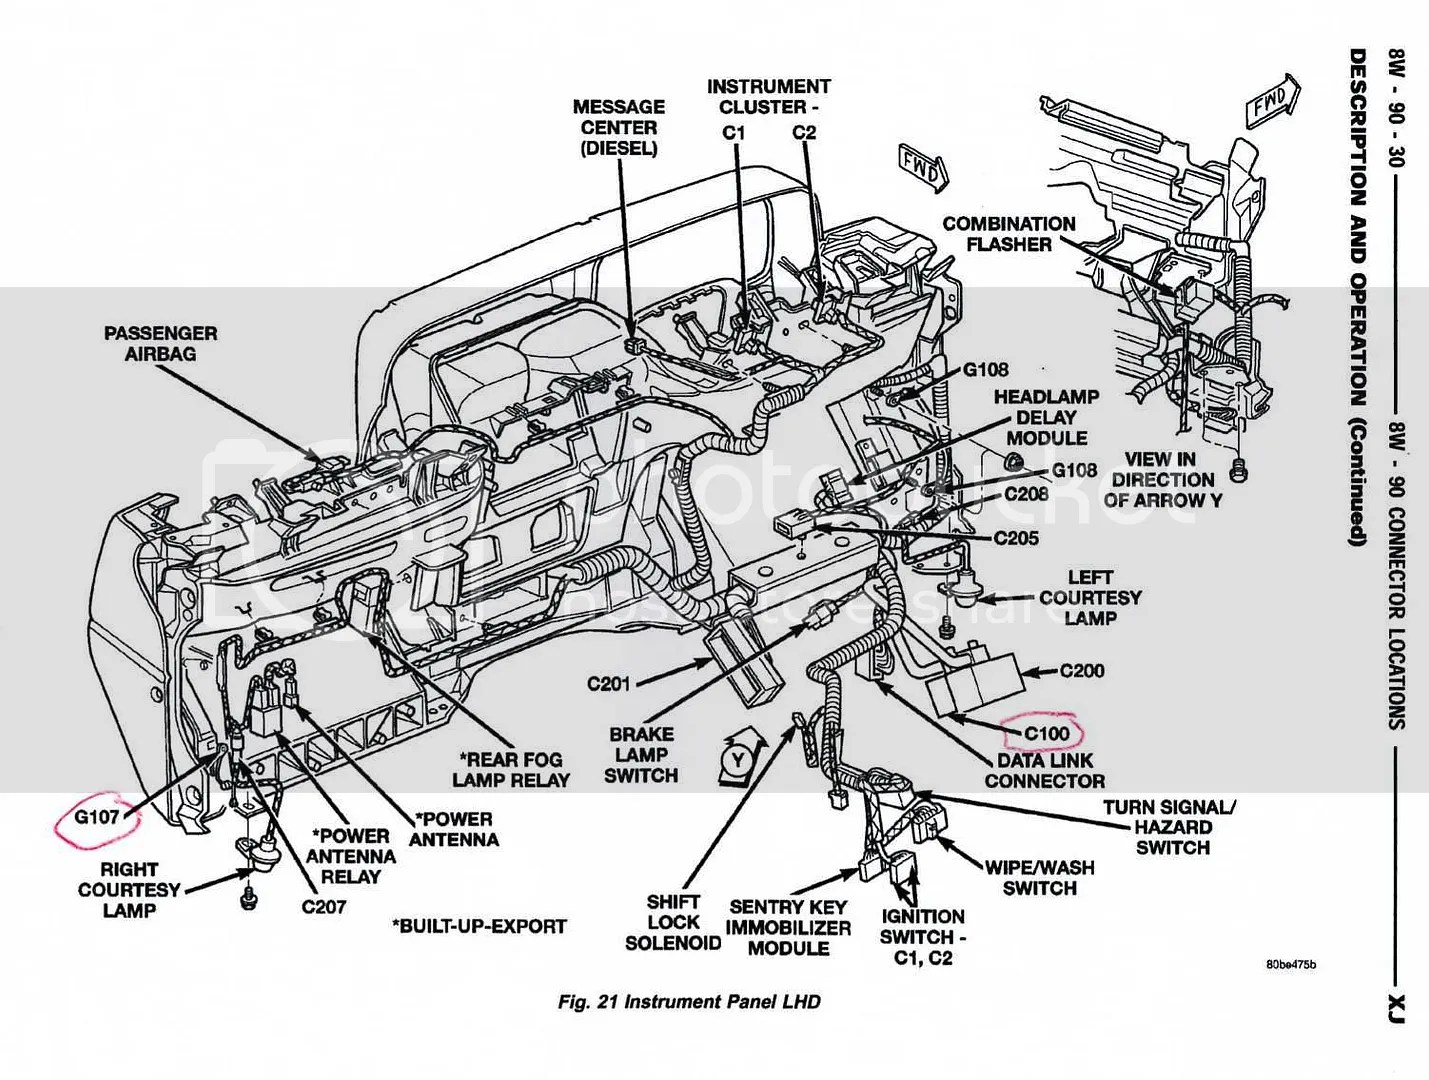 1990 Jeep Wrangler Wiring Diagram